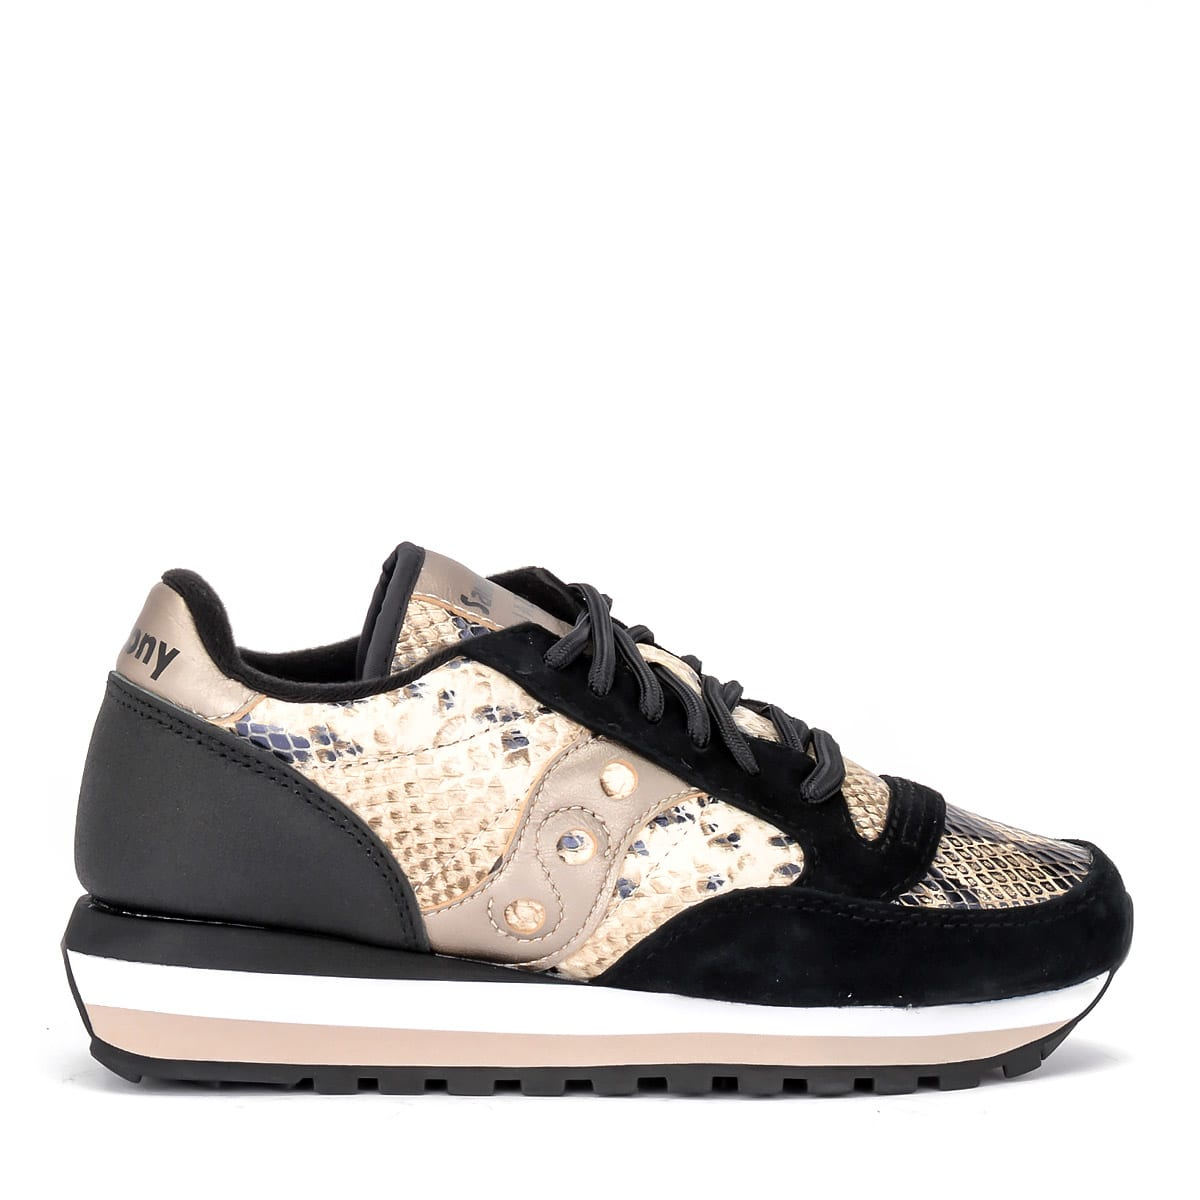 eafef67d30 Saucony Jazz Triple Sneaker In Black Suede And Animalier Leather With Gold  Details